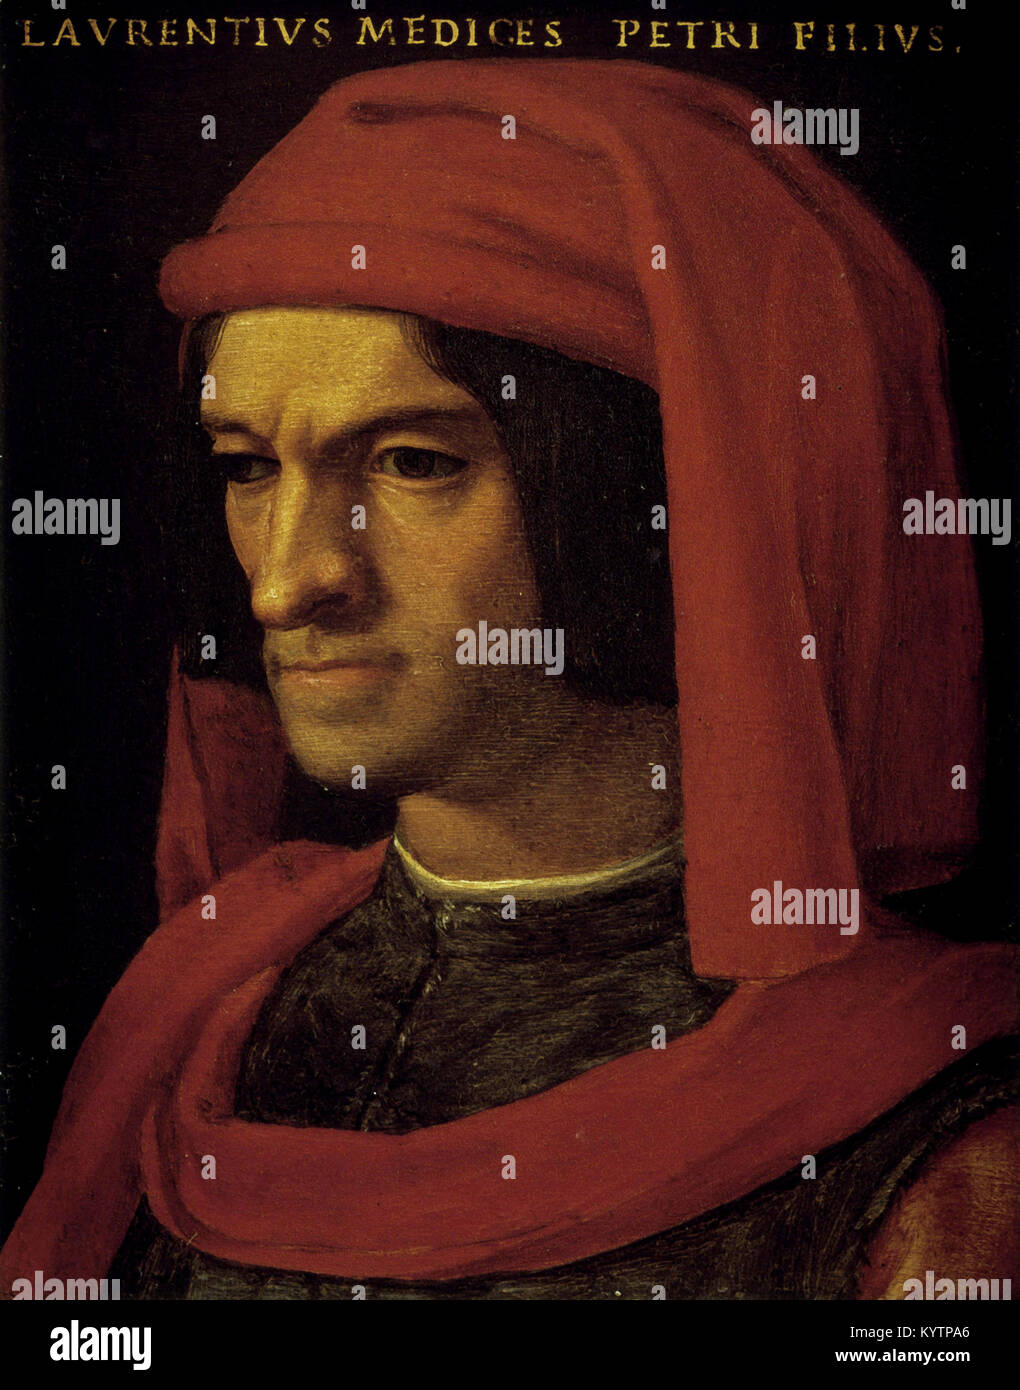 Agnolo di Cosimo - Agnolo Bronzino - Portrait of Lorenzo il Magnifico Stock Photo